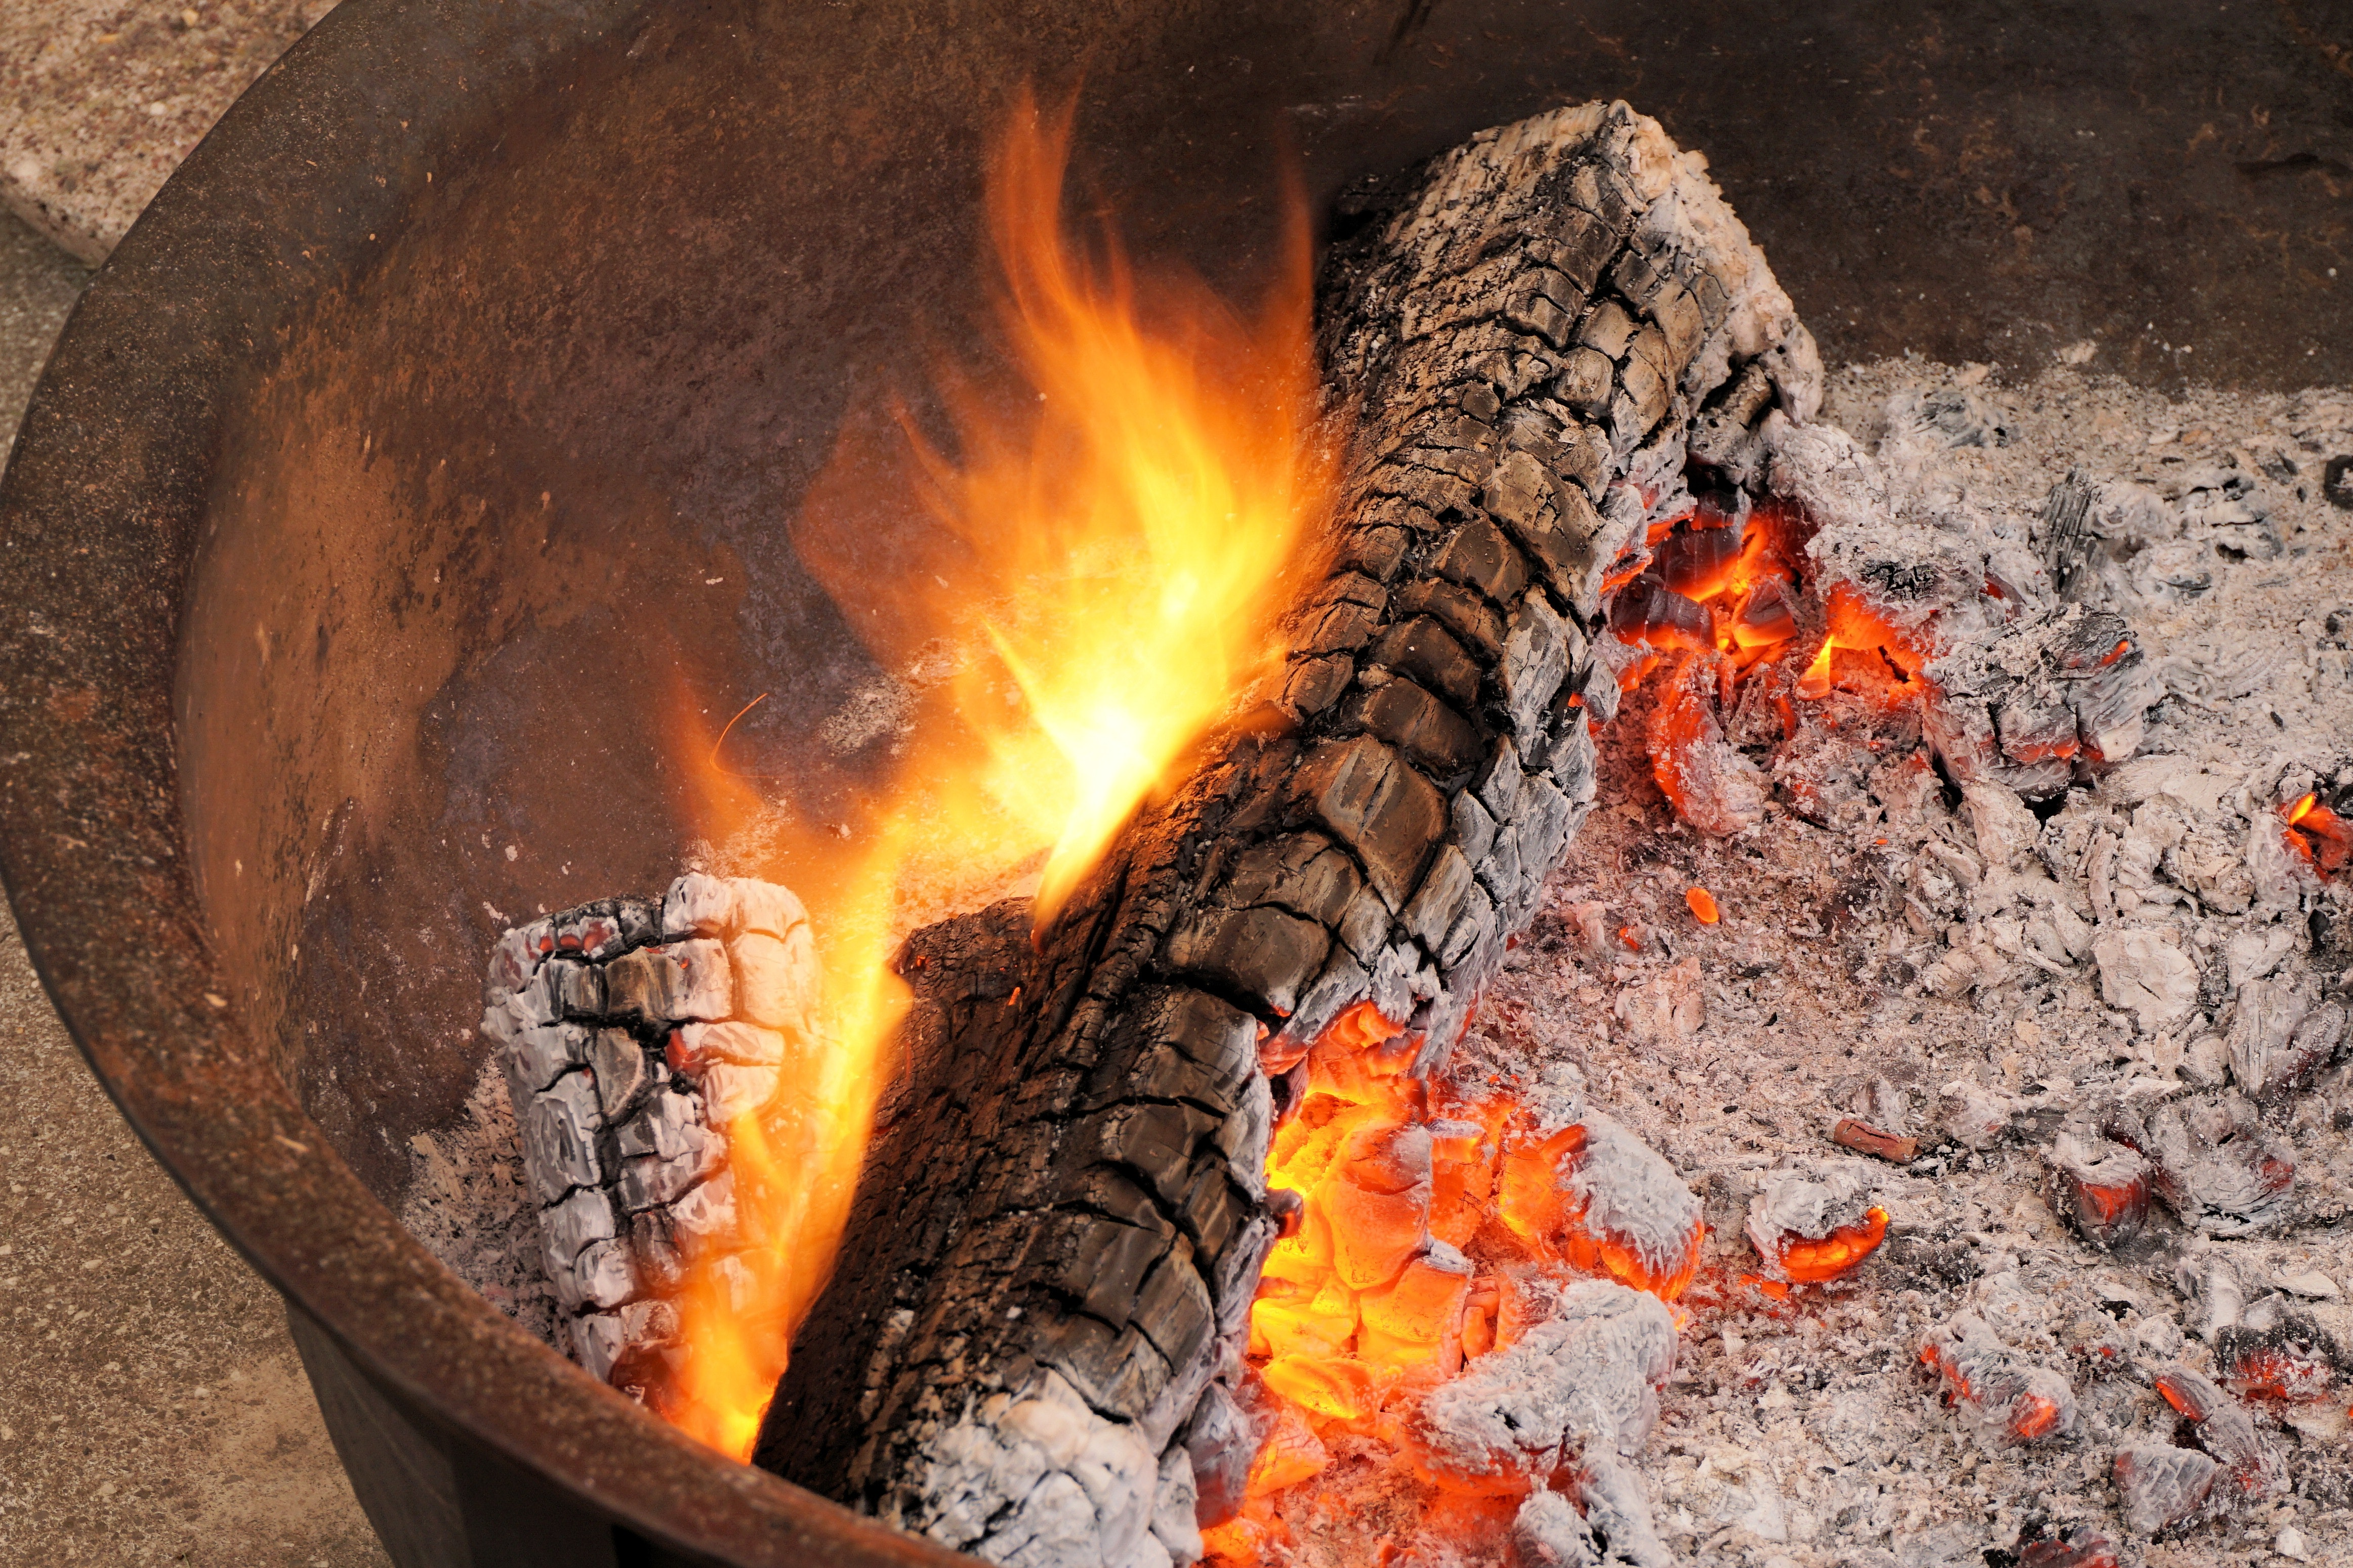 Charcoal On Fire 183 Free Stock Photo